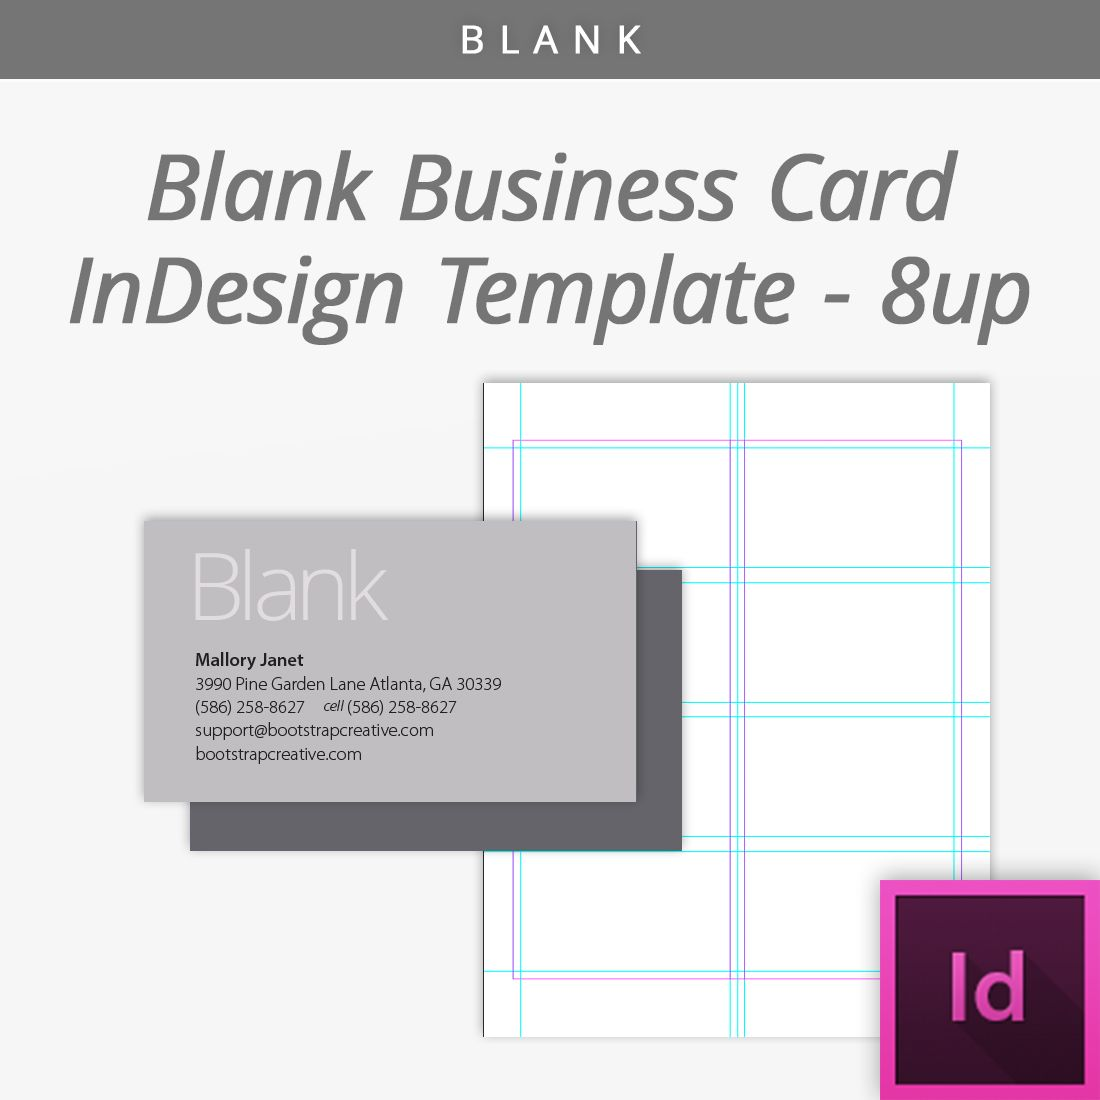 Blank indesign business card template 8 up free download blank indesign business card template 8 up free download designtemplate fbccfo Choice Image